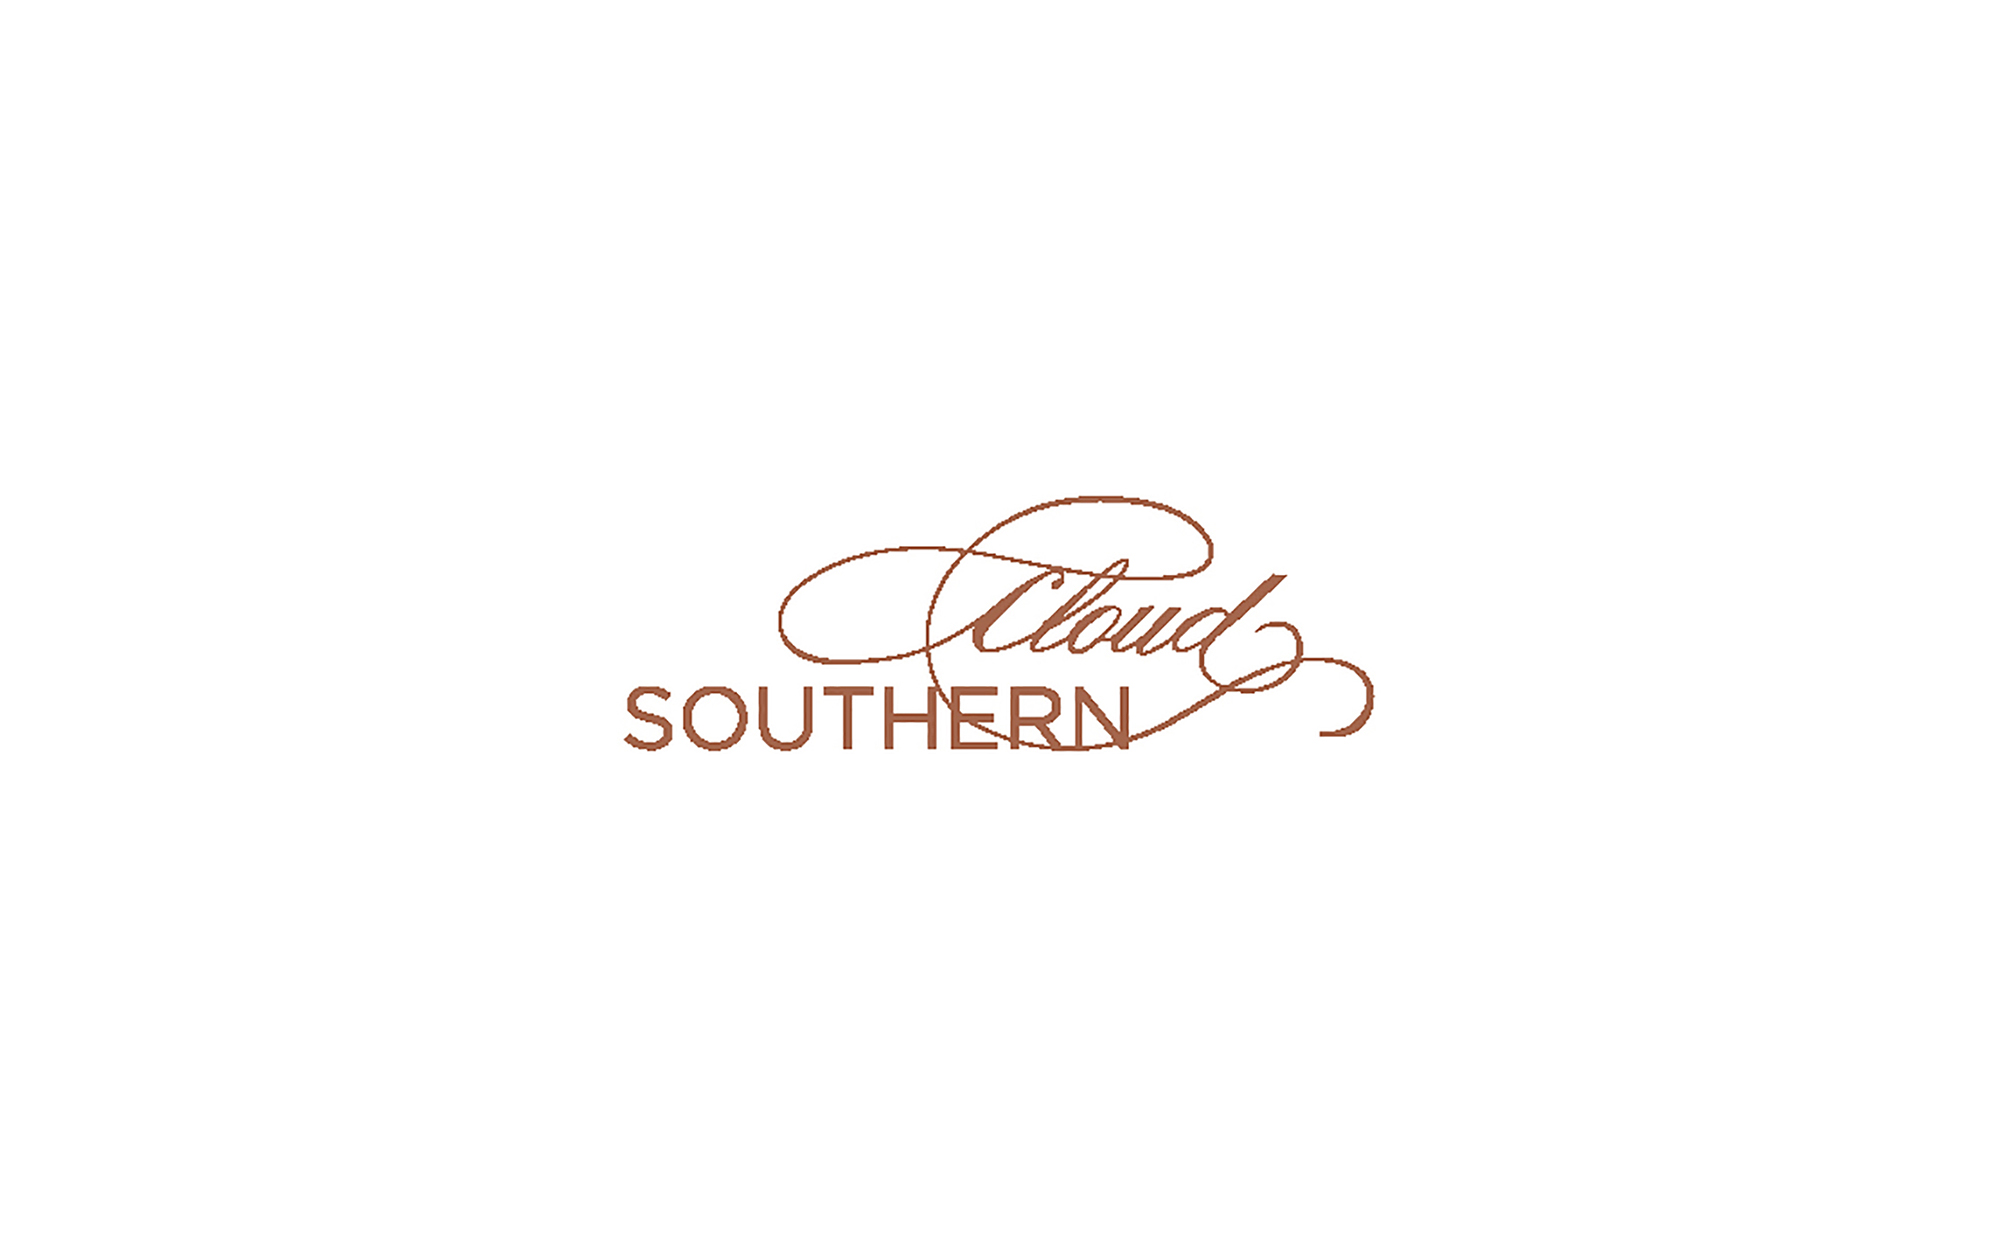 SOUTHERN-CLOUD